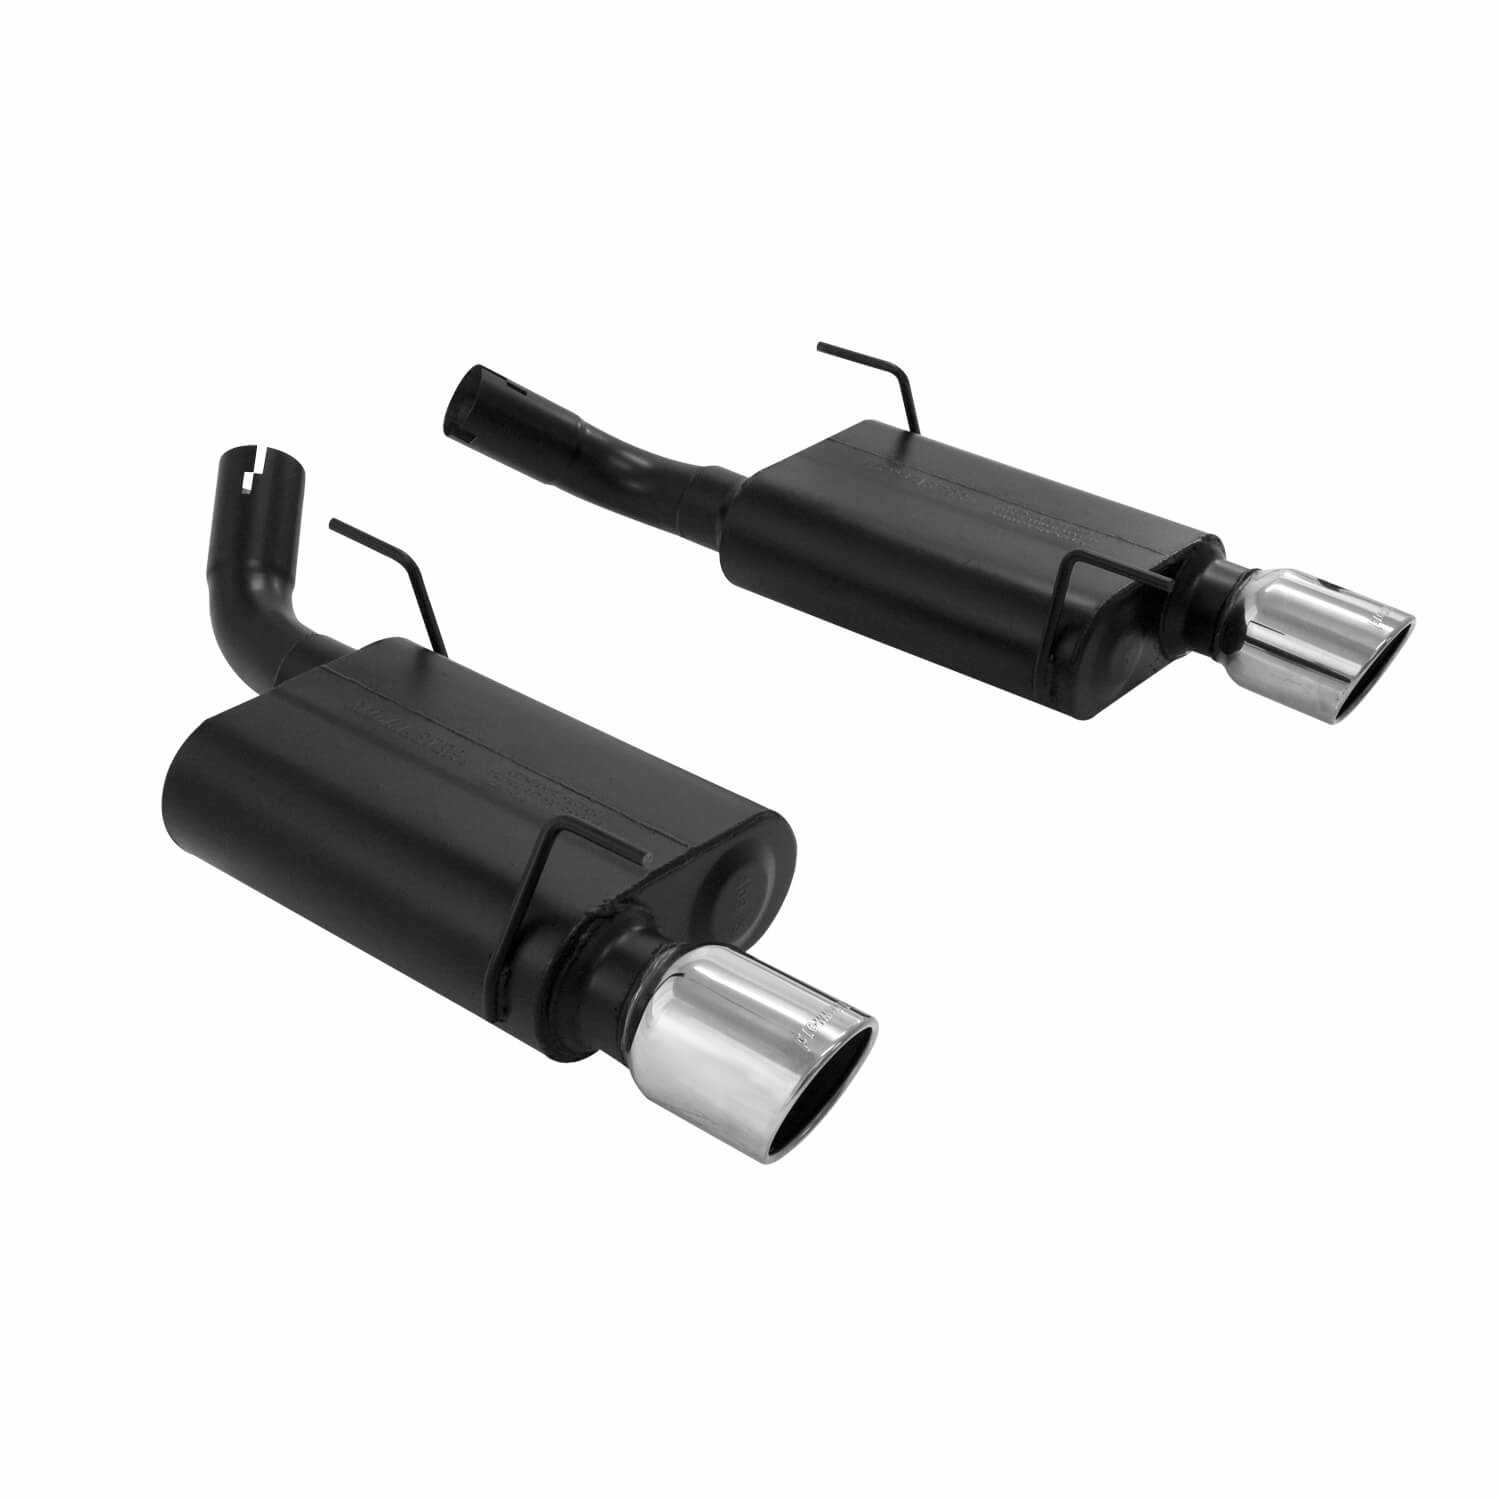 817460 Flowmaster American Thunder Axle Back Exhaust System